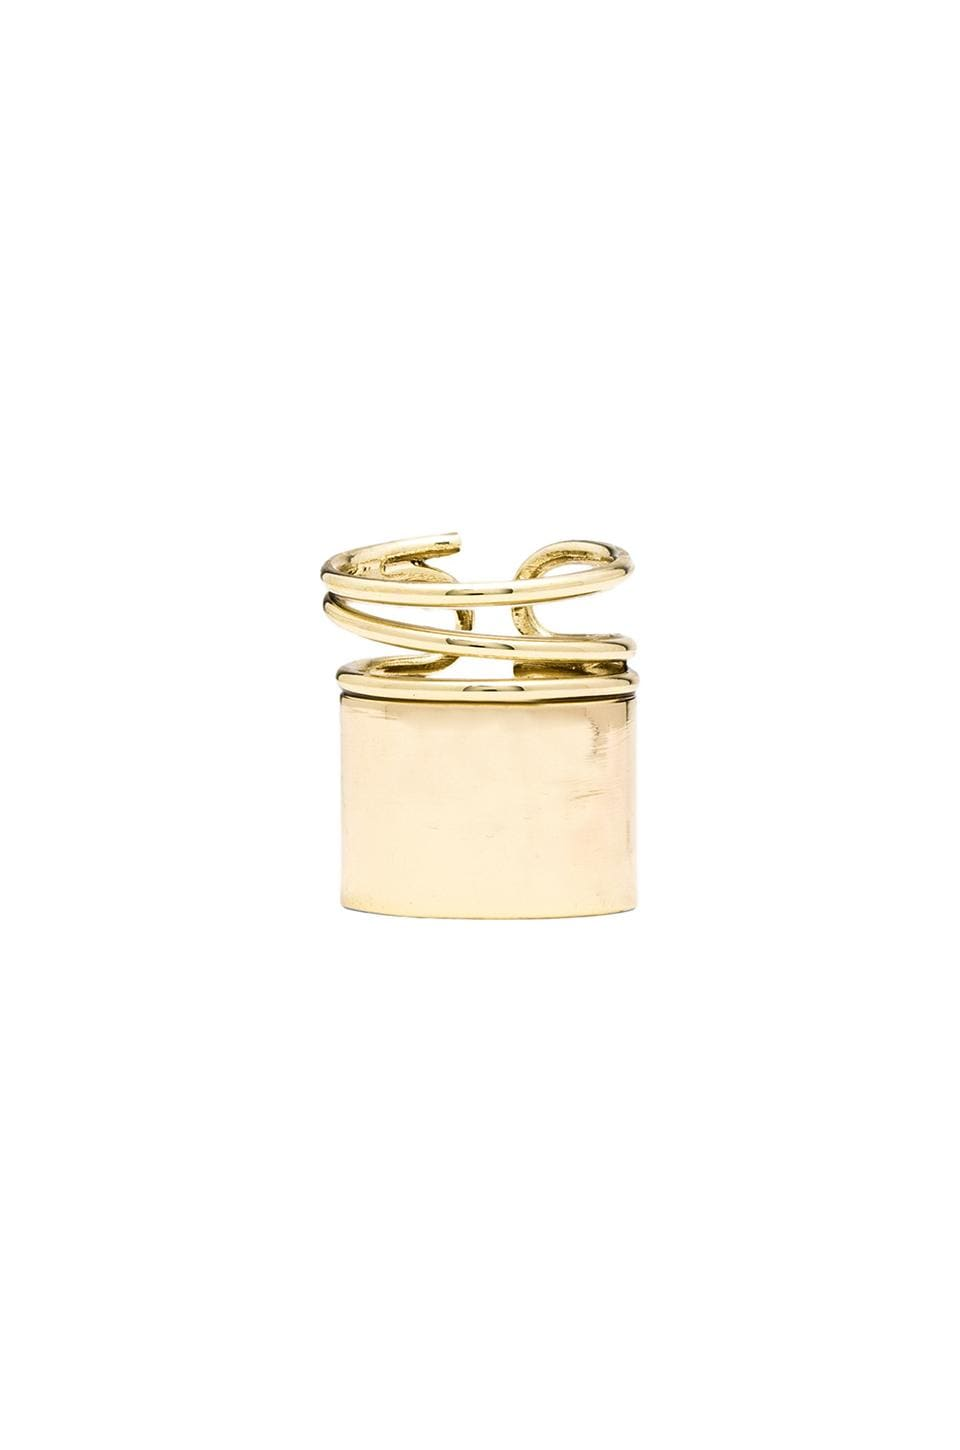 Lisa Freede Piper Ring in Gold